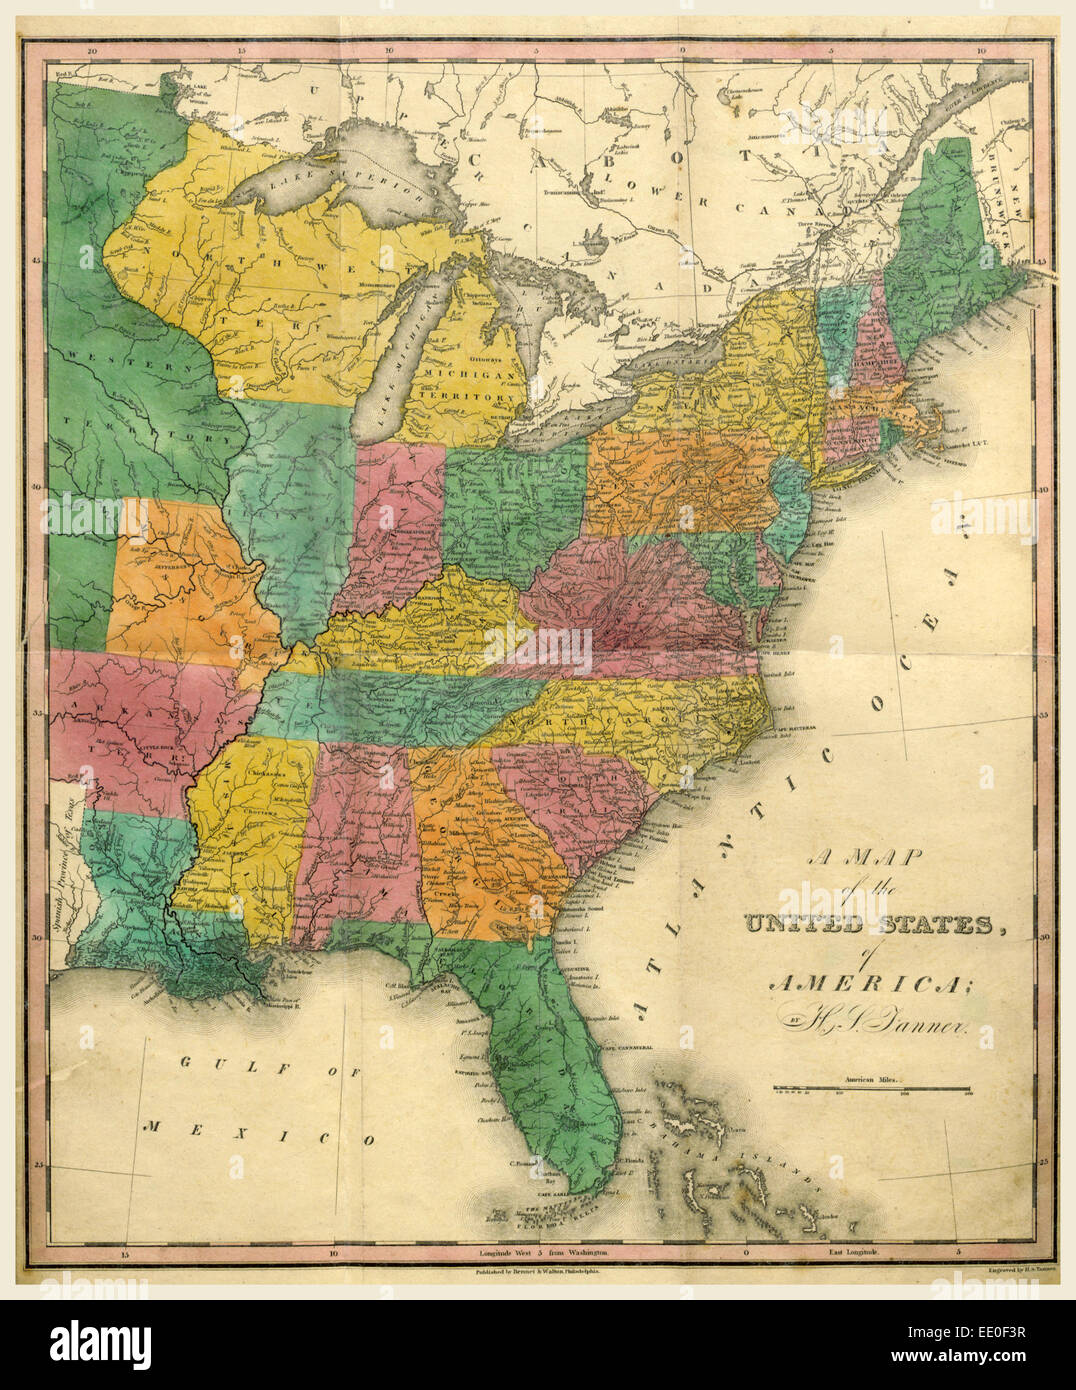 Map Of The United States Th Century Engraving US Stock Photo - Map of us stock